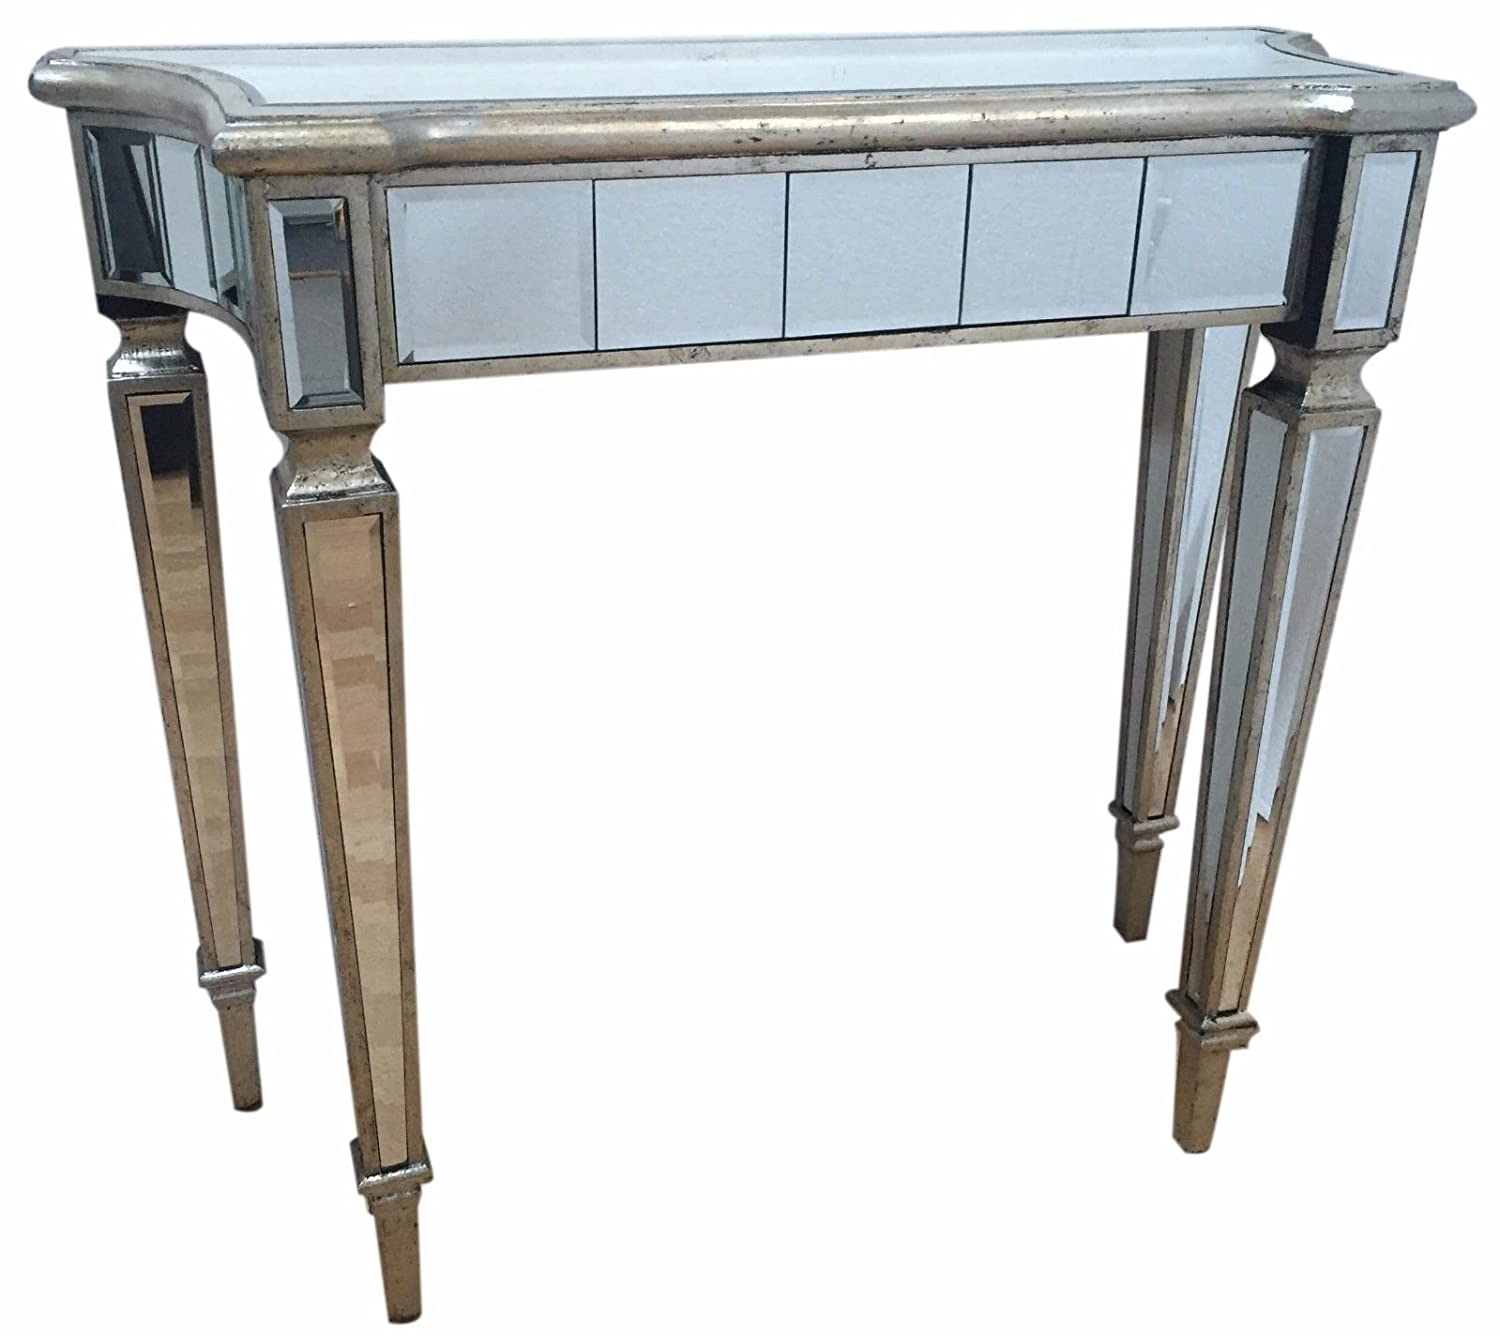 Pleasant Interiors In Vogue Mirrored Console Dressing Table Silver Download Free Architecture Designs Photstoregrimeyleaguecom